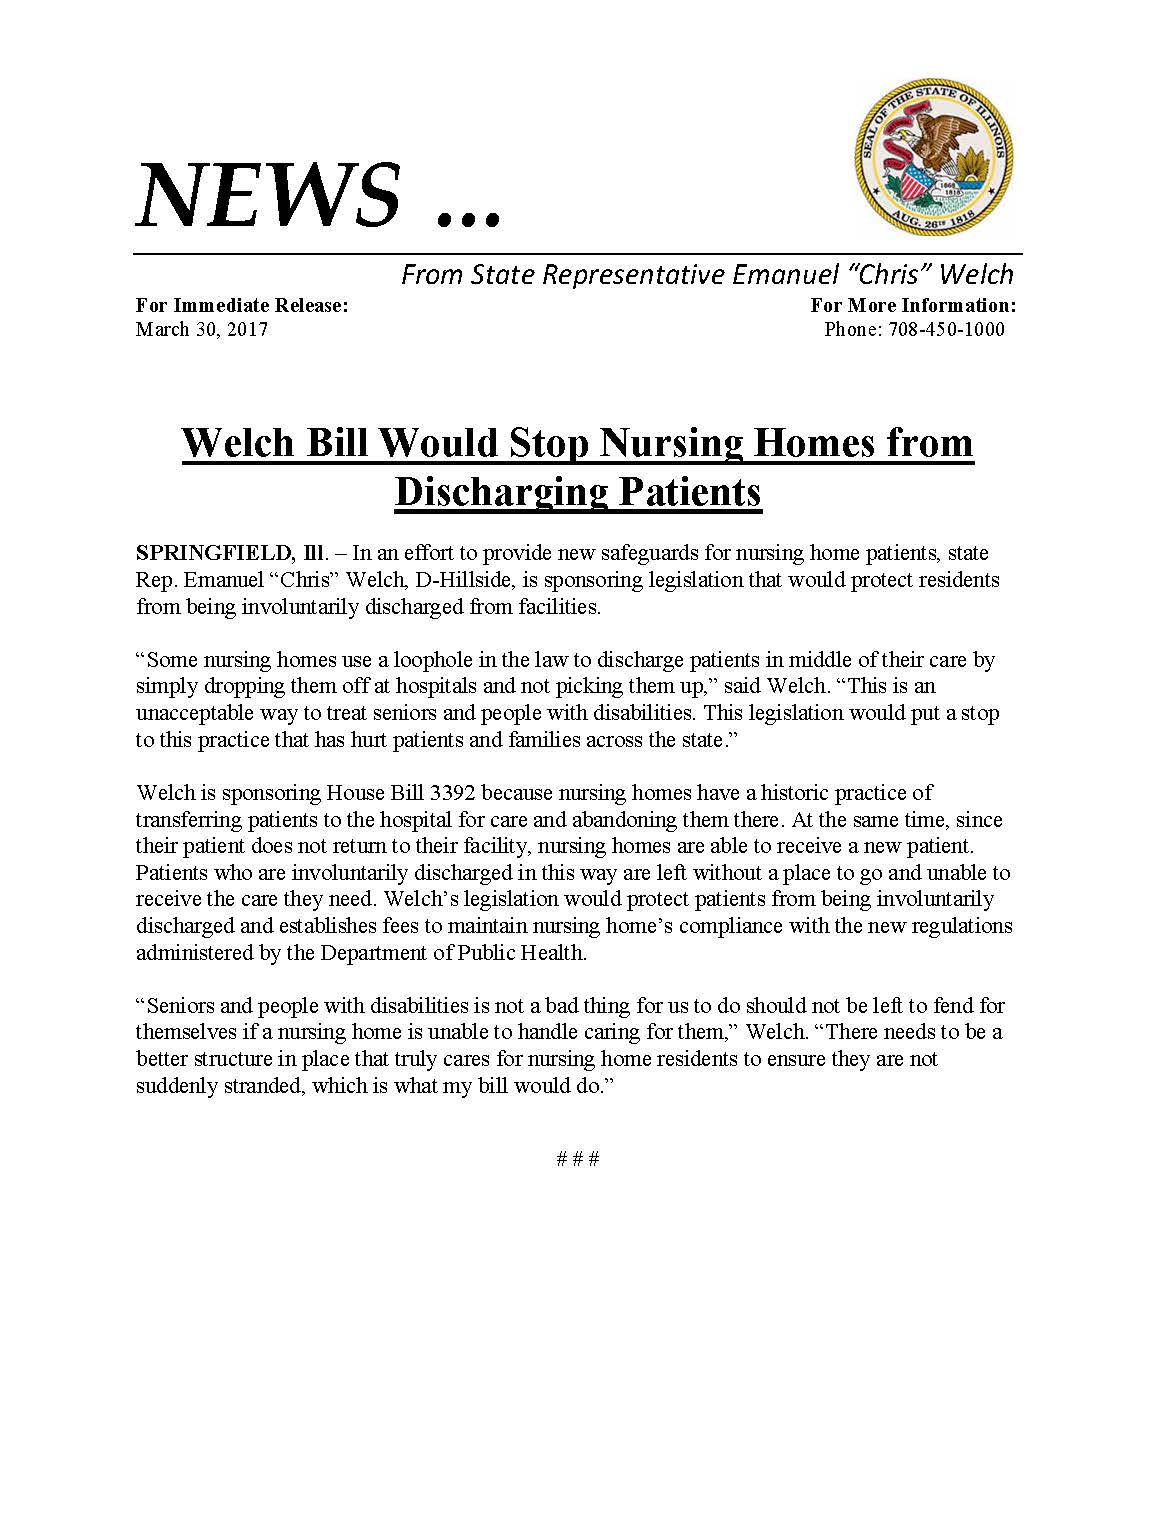 Welch Bill Would Stop Nursing Homes from Discharging Patients  (March 30, 2017)